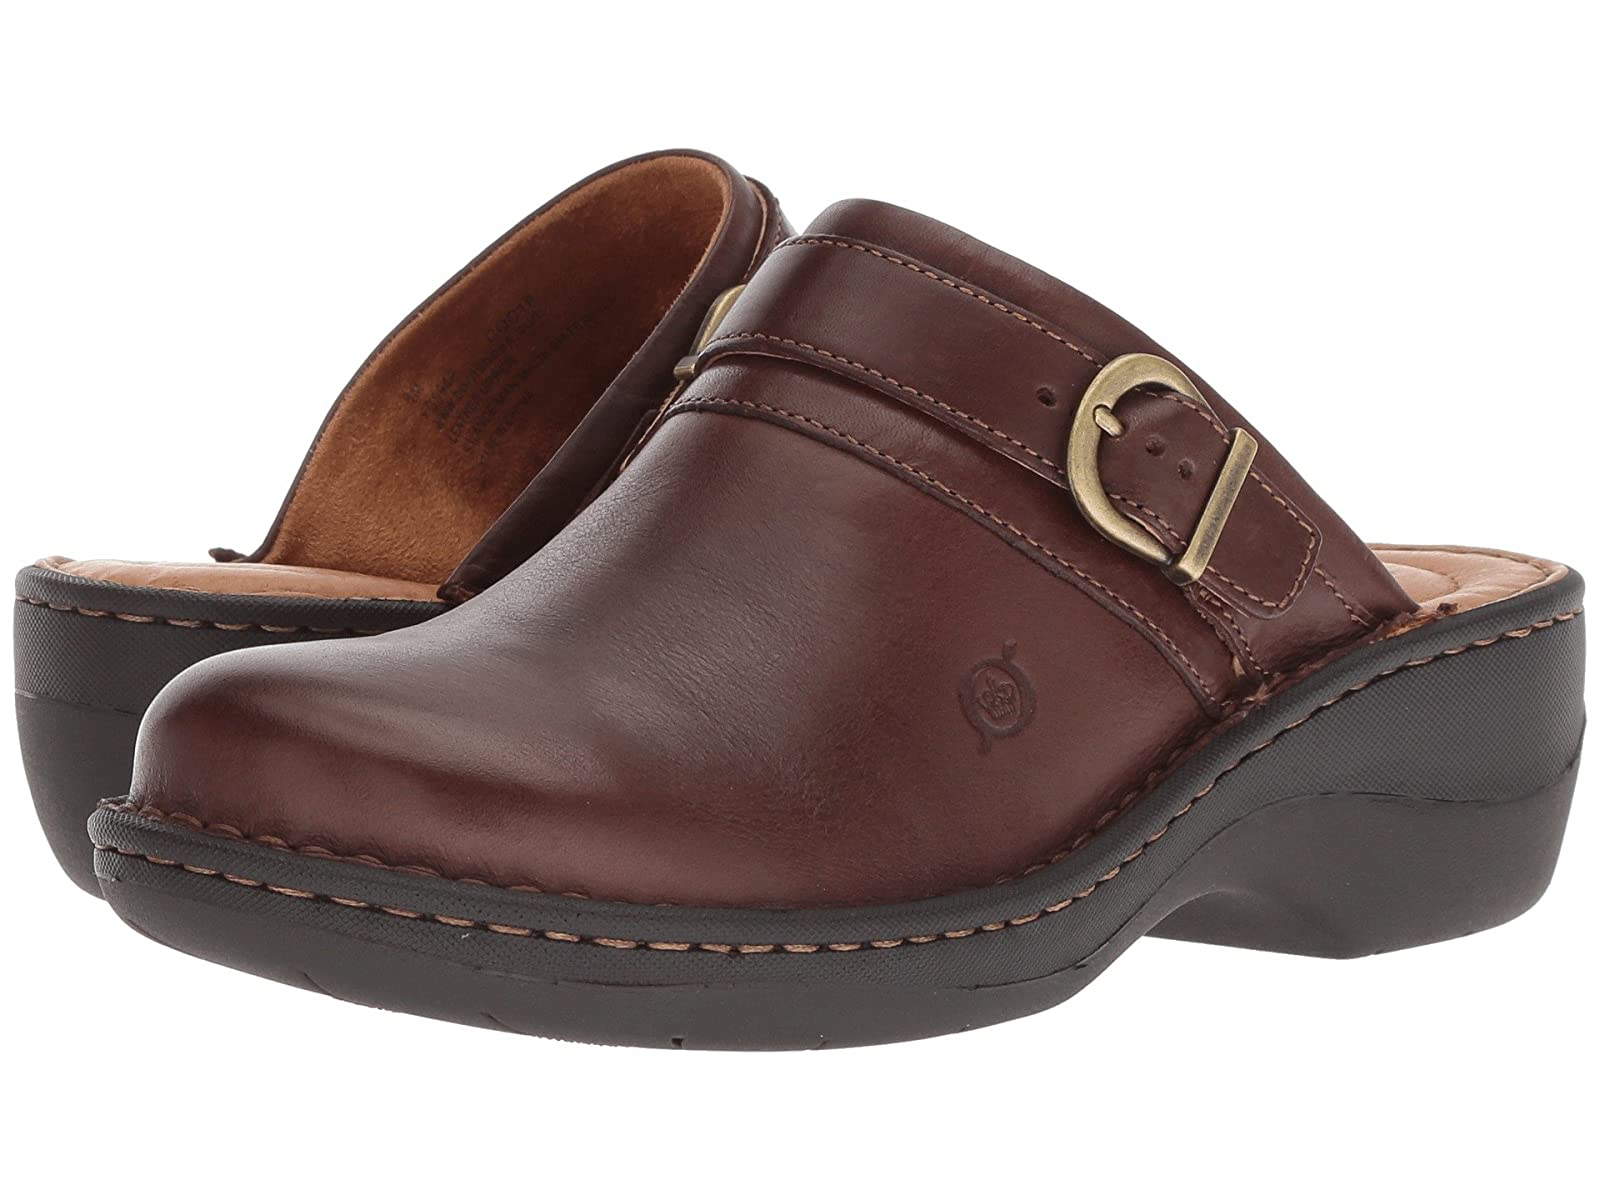 Born AvocaEconomical and quality shoes